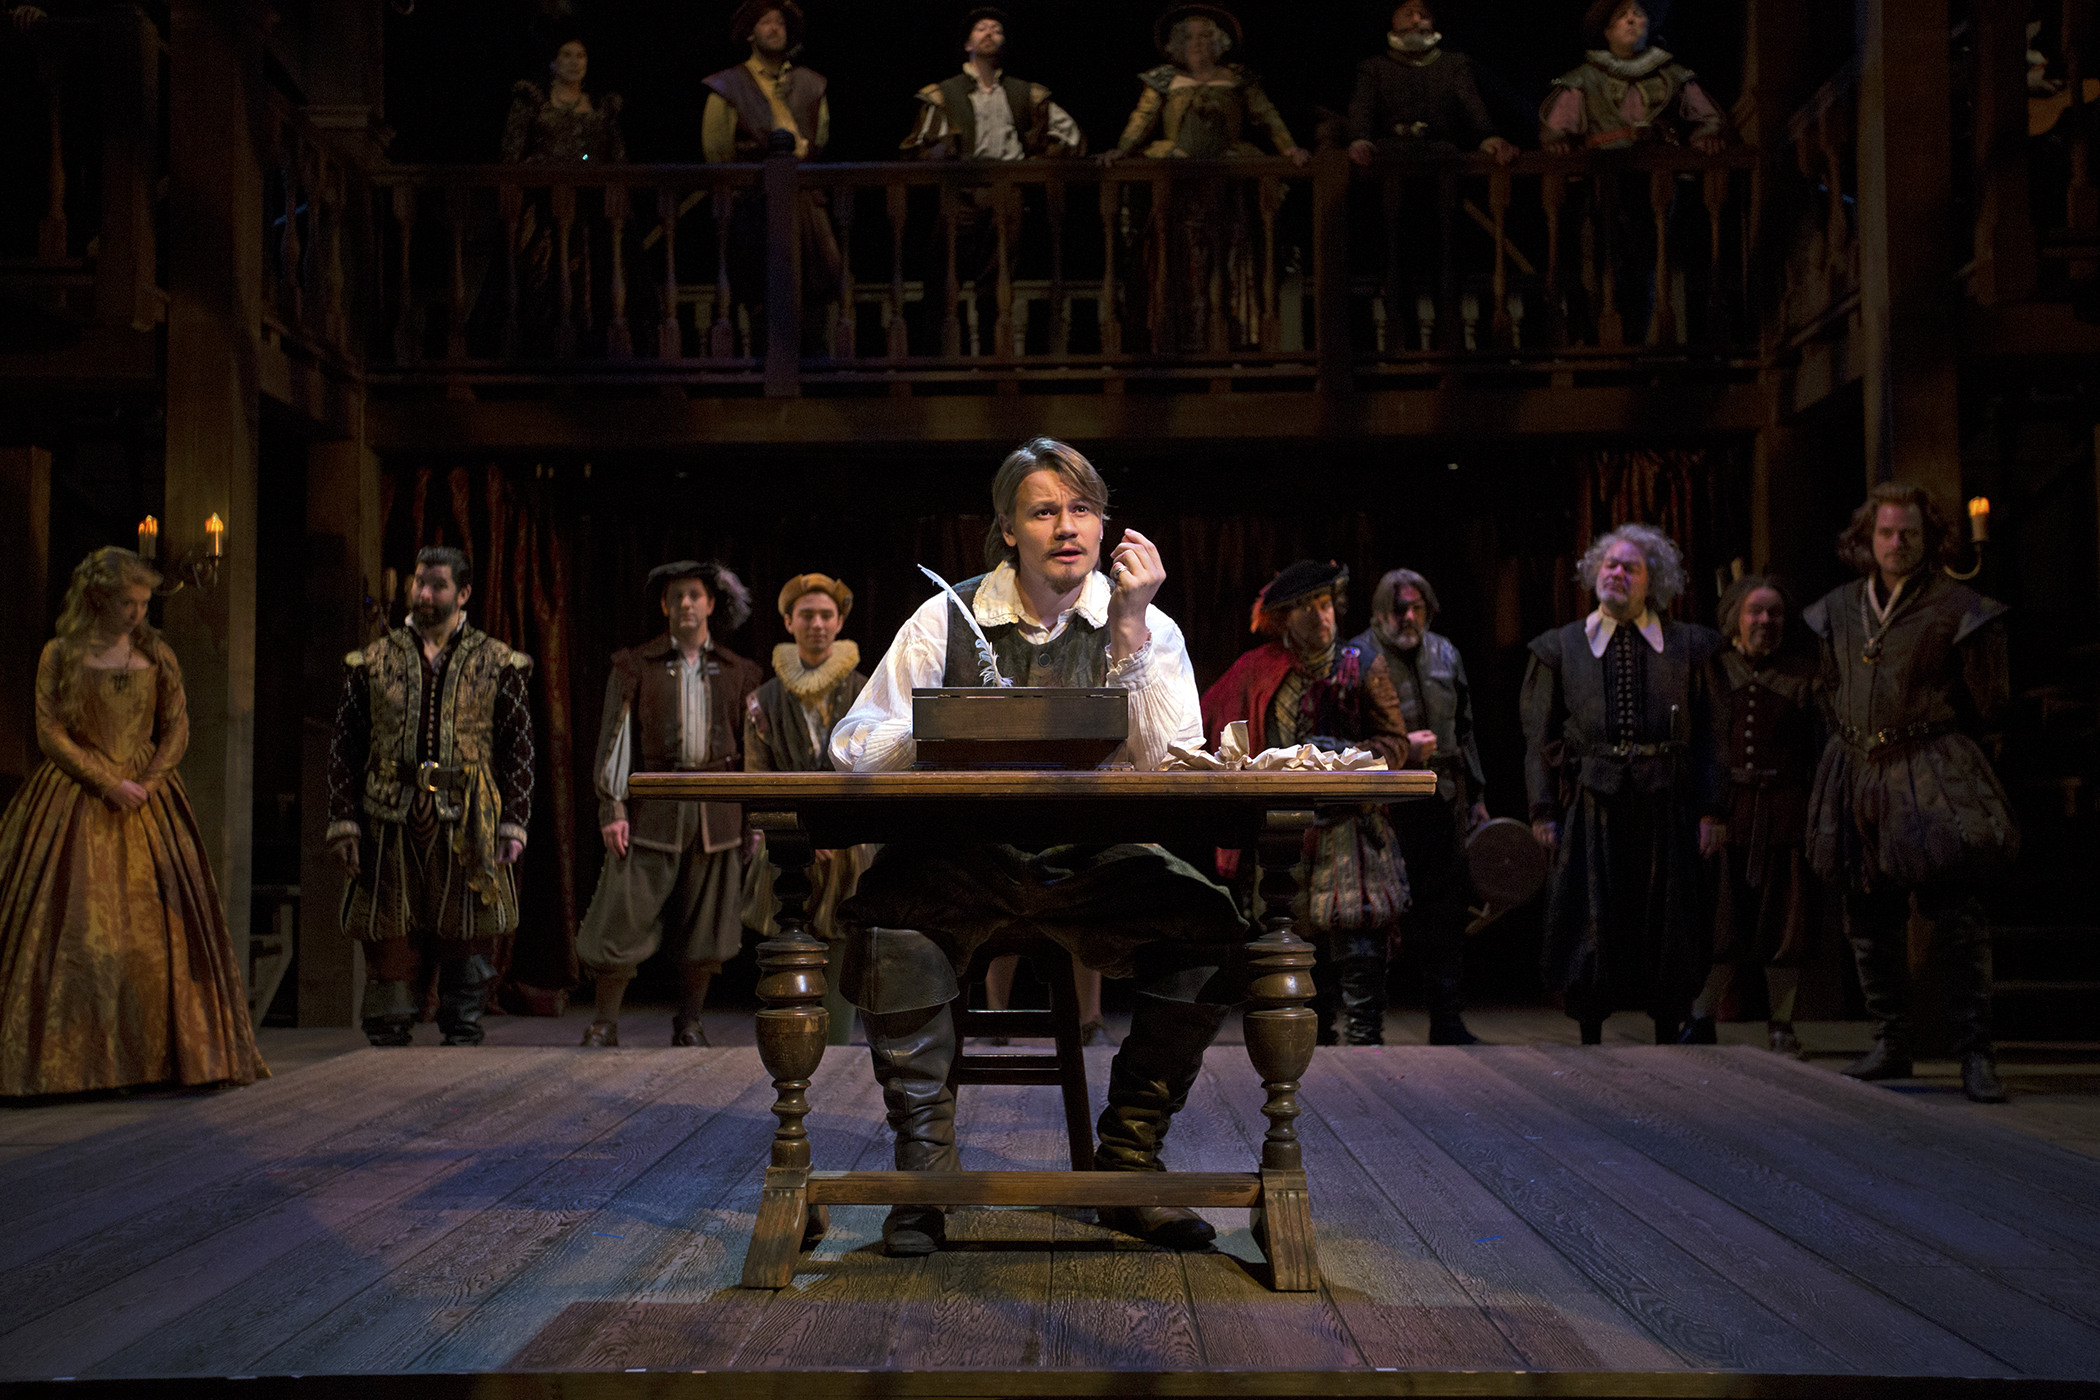 Shakespeare in Love   Adapted by Lee Hall, Based on the Screenplay by Marc Norman and Tom Stoppard  Directed by Marc Masterson  South Coast Repertory  2018